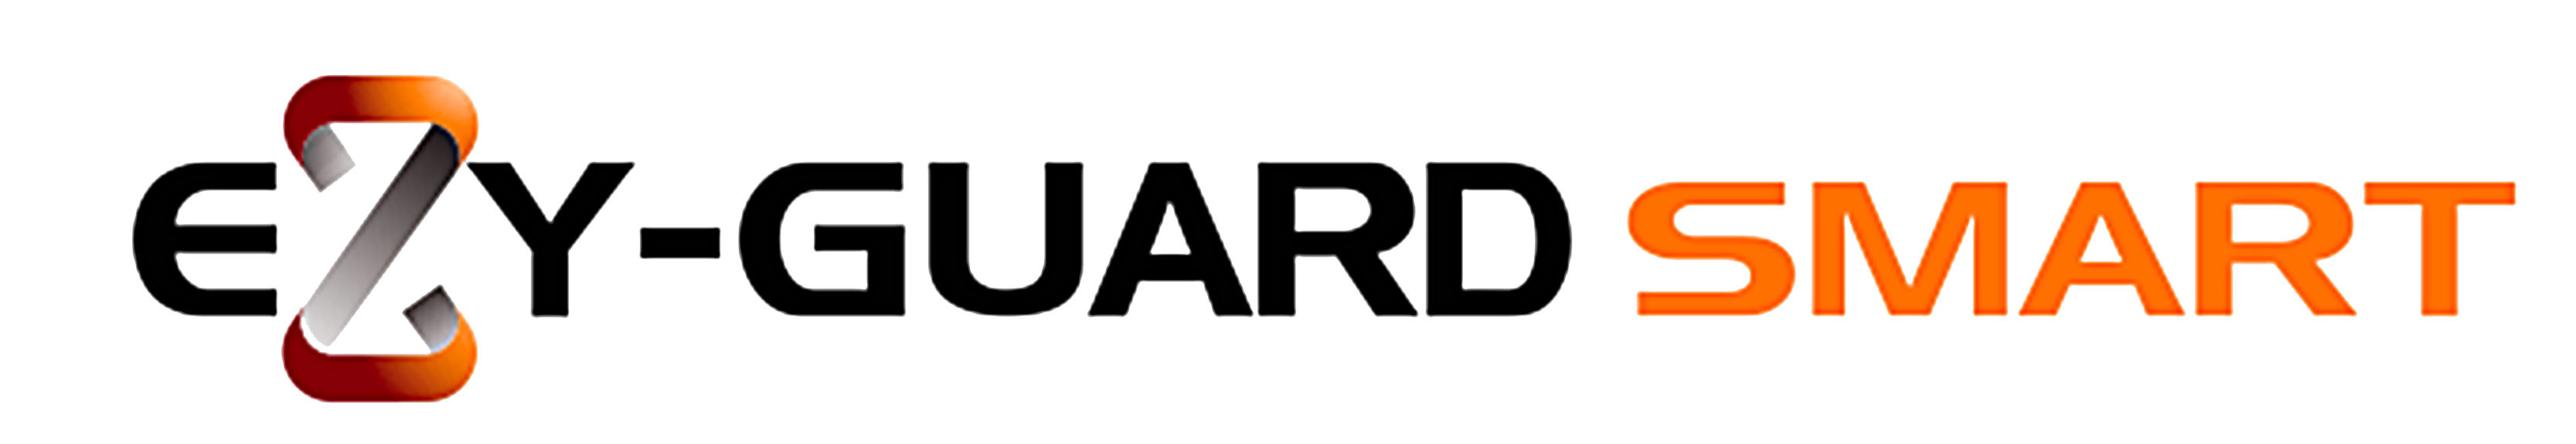 Ezy-Guard-Smart-Logo